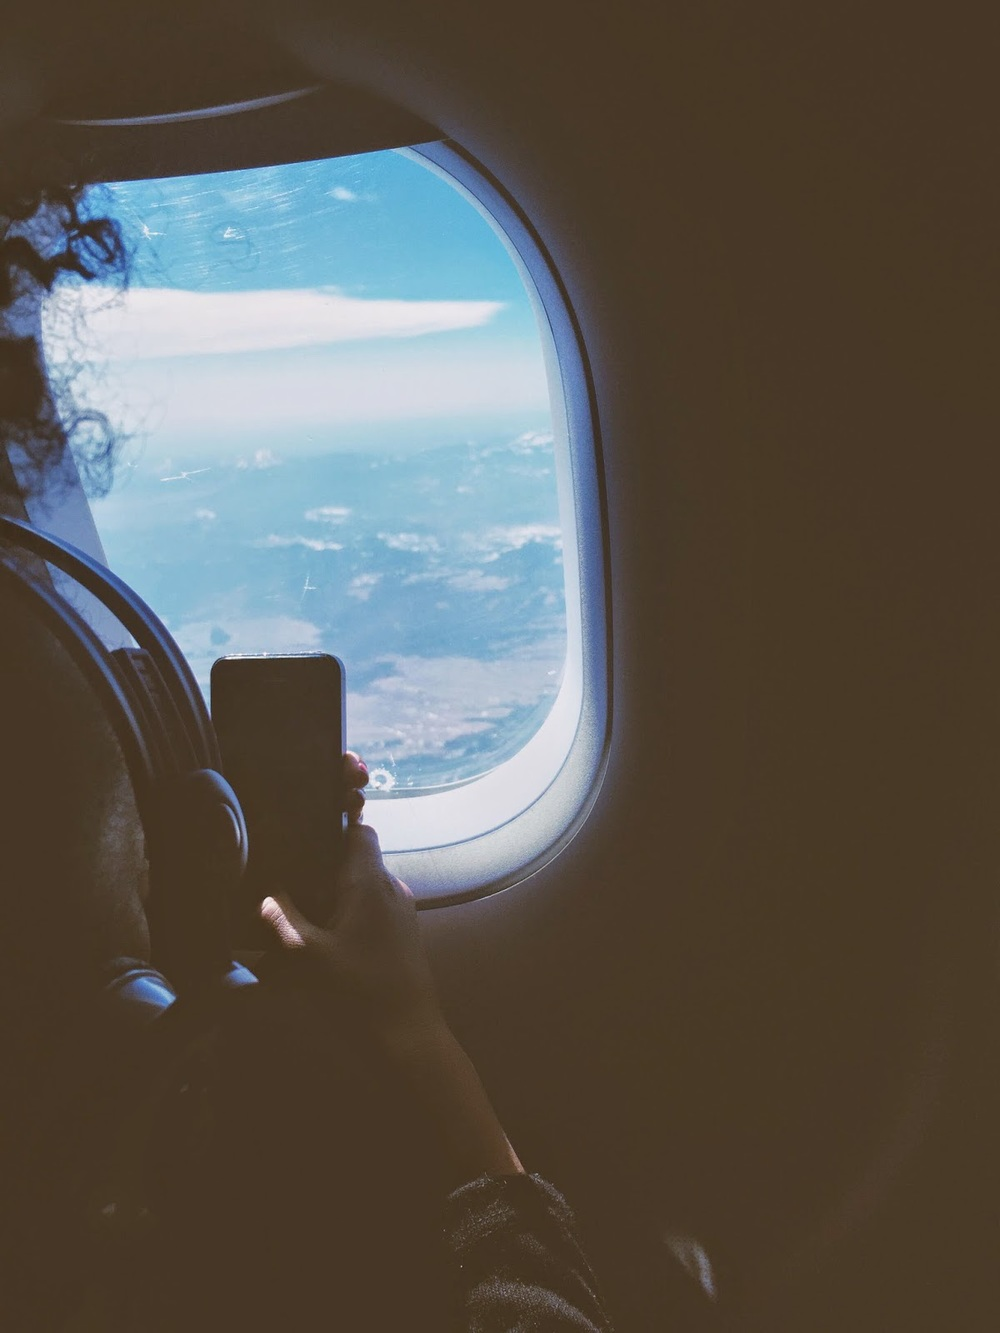 char taking a pic of the plane passing over colorado.